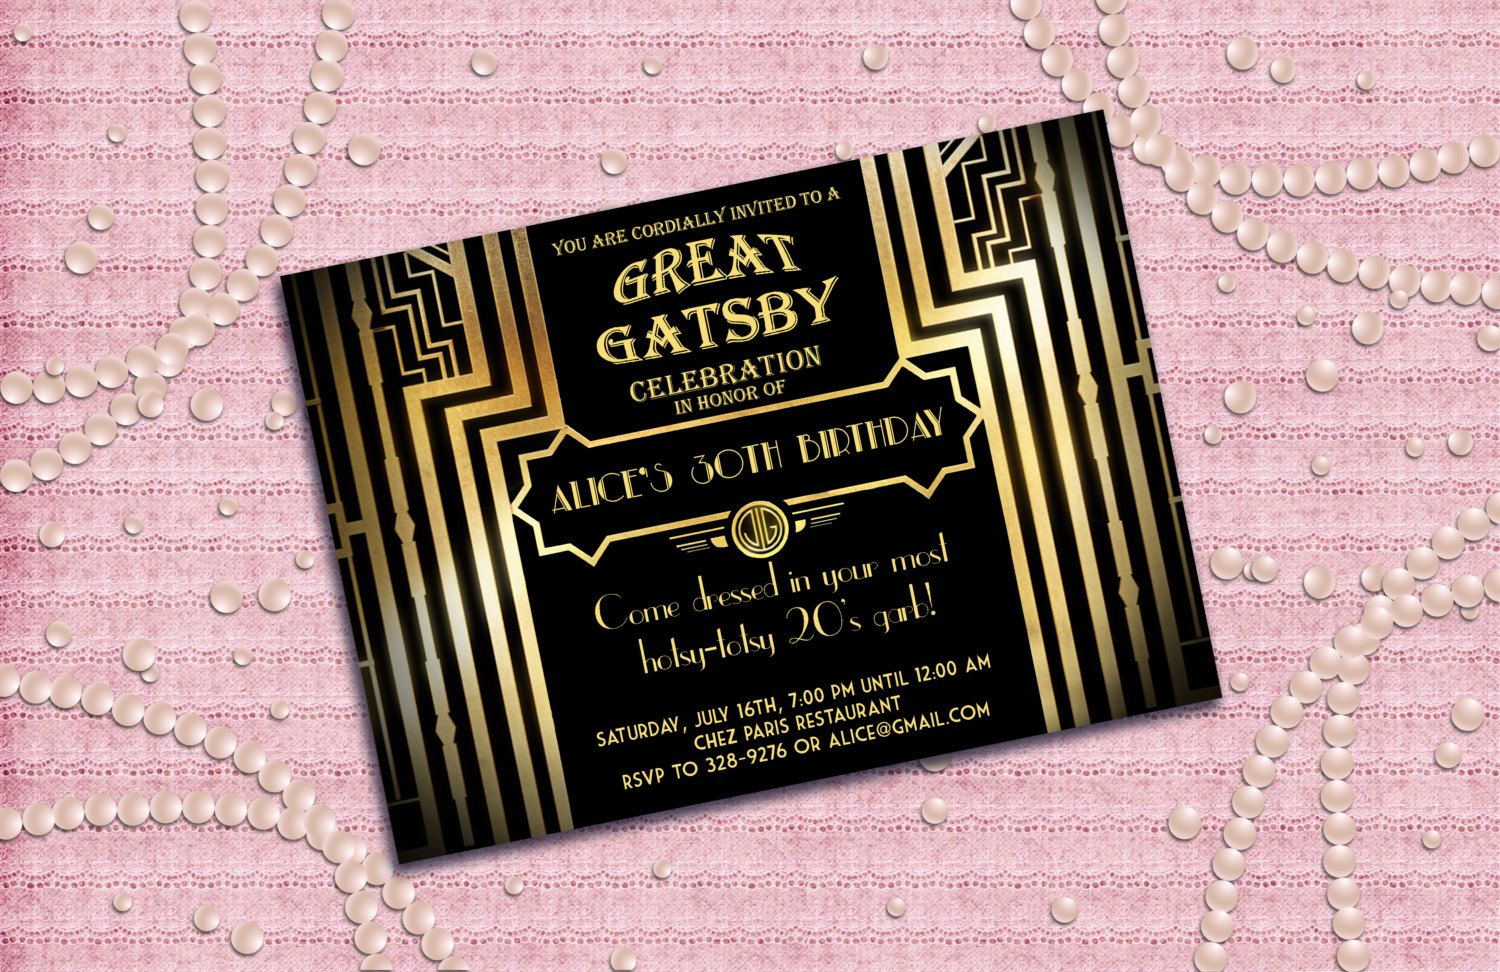 great gatsby invitation diy ideas Google Search Great Gatsby